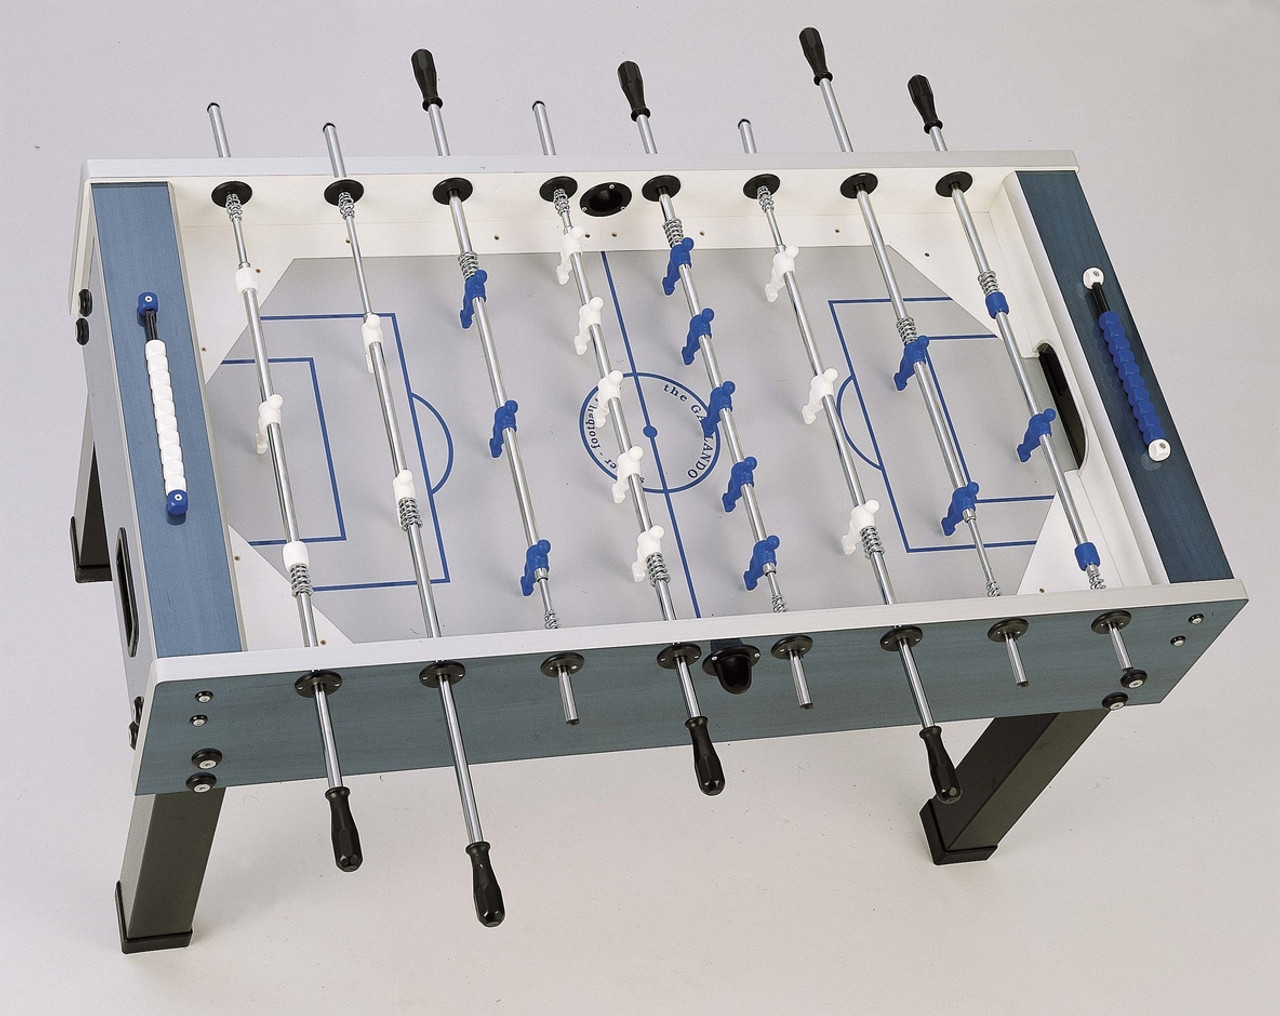 Garlando G-500  Weatherproof  Foosball Table, Available in 3 Colors